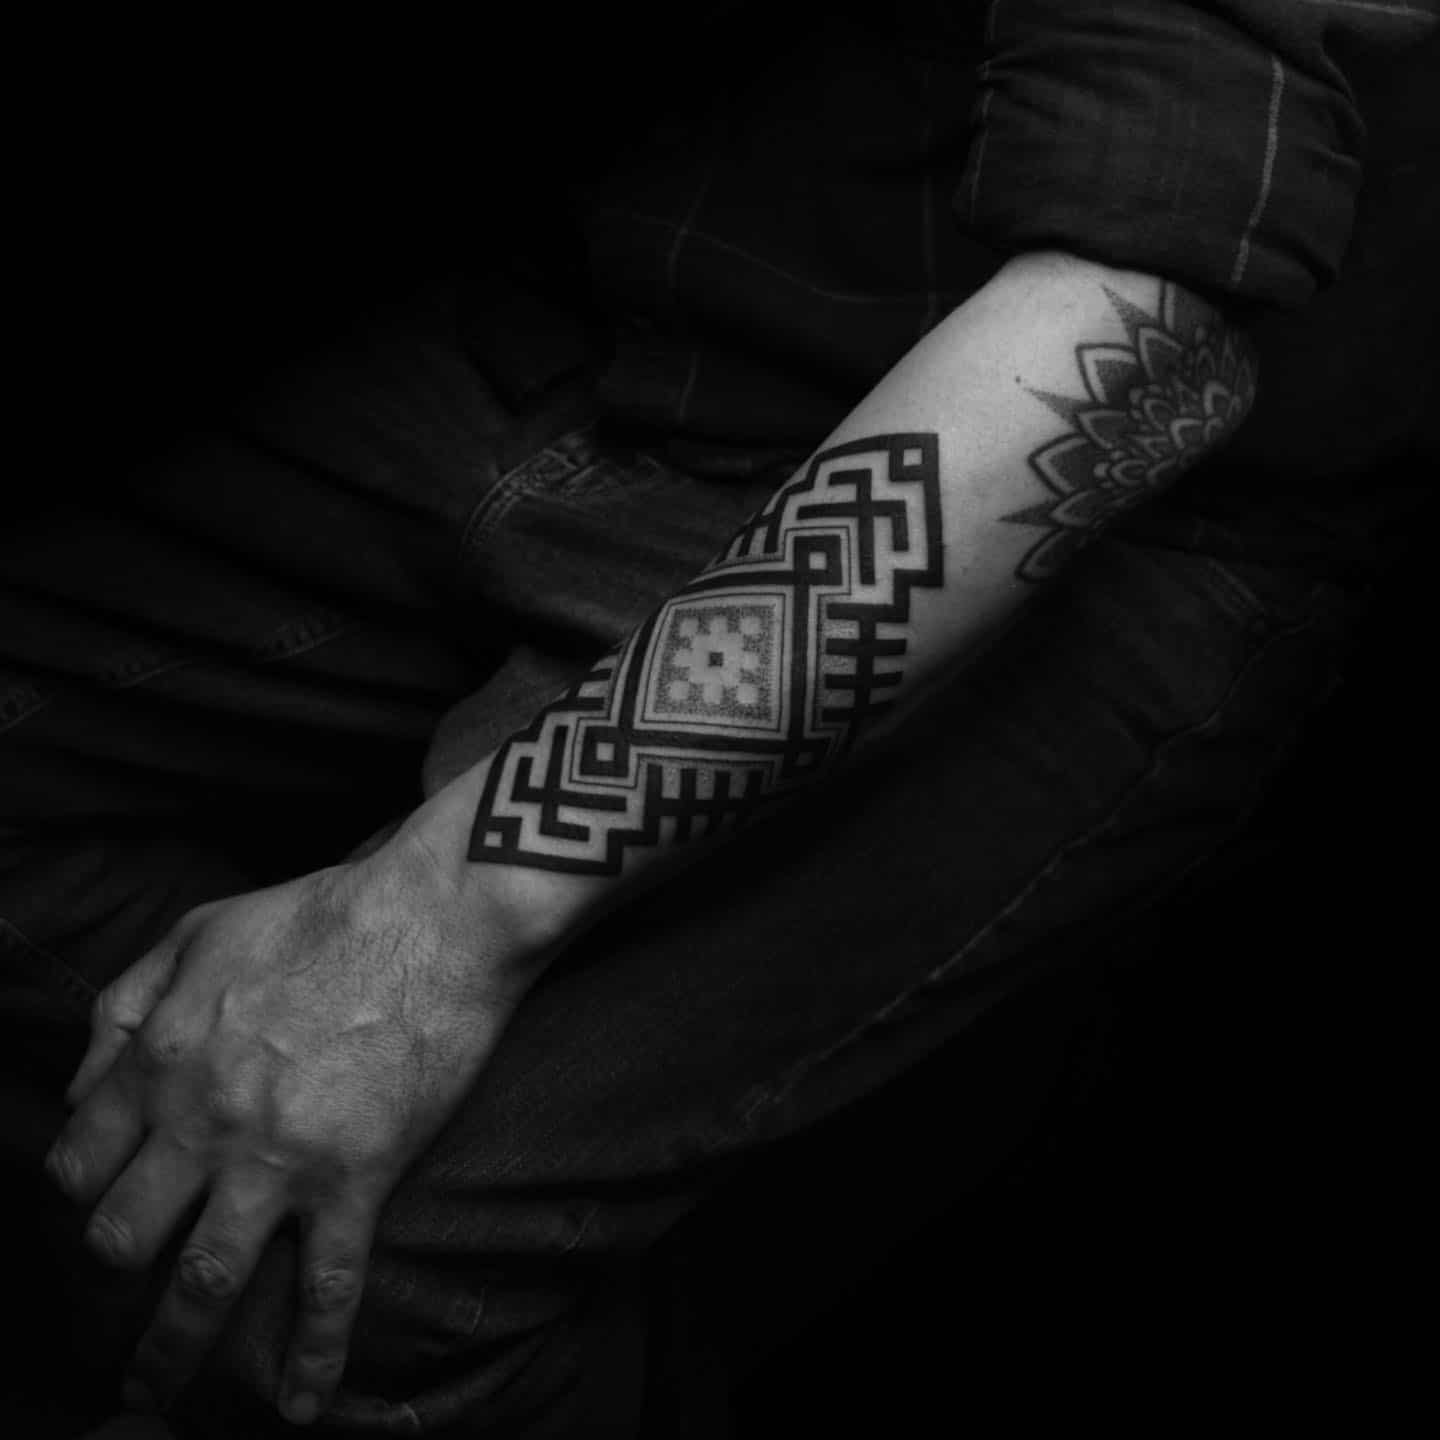 Big thanks to Frankie for getting this!   This is a stylised piece with an incorporated protection symbol and two symbols for the Jumis twins. They usualy symbolise twin horses, protect your home and help the household be productive. Men used to have this symbol woven into their belts too.  studioxiii patterndesign geometrictattoo geometricart geometricdesign linework tribaltattoo tribalart uktattoo uktattooist uktattooartists edinburghtattoostudio scotlandtattoo baltic balticart lithuanian lithuania supportgoodtattooing supportgoodtattooers blackworktattoos blackworknow blck blxckwork blxck btattooing uktta tatt tattooideas newtattoo